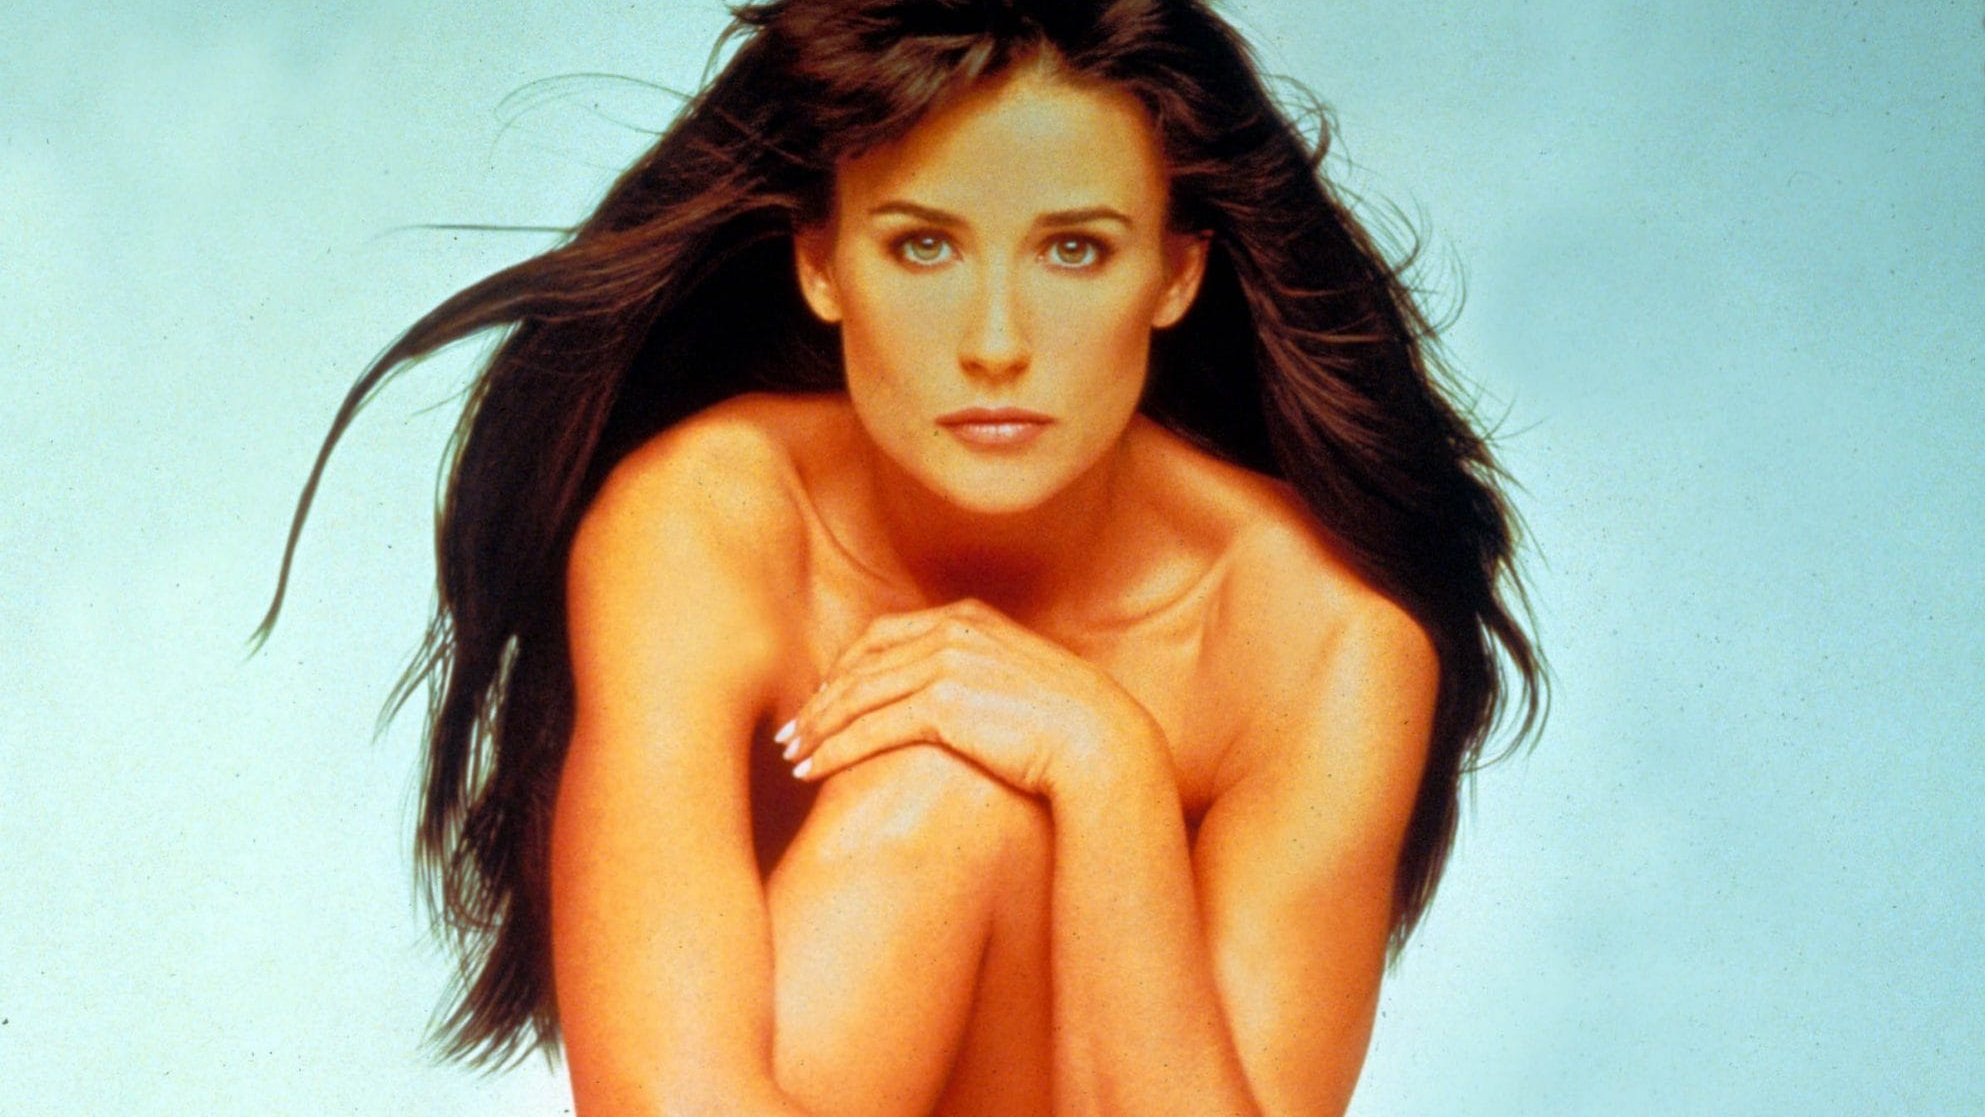 Demi Moore Is Making An Erotic TV Series